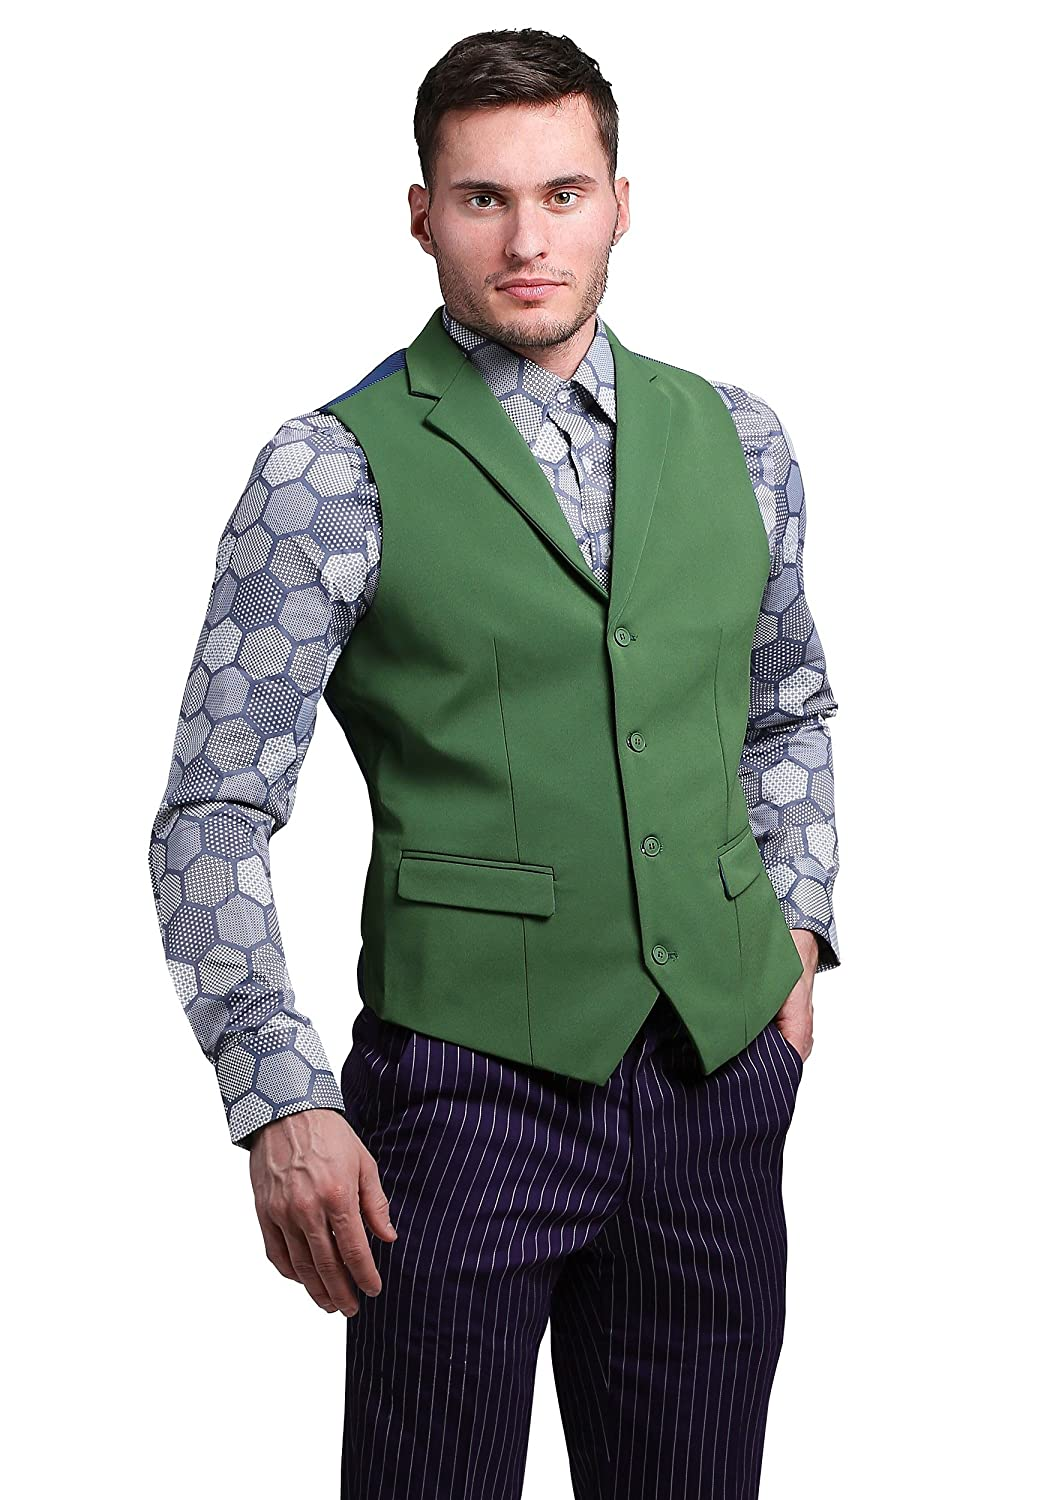 FUNSUITS mens THE JOKER Suit Vest (Authentic) X-Large